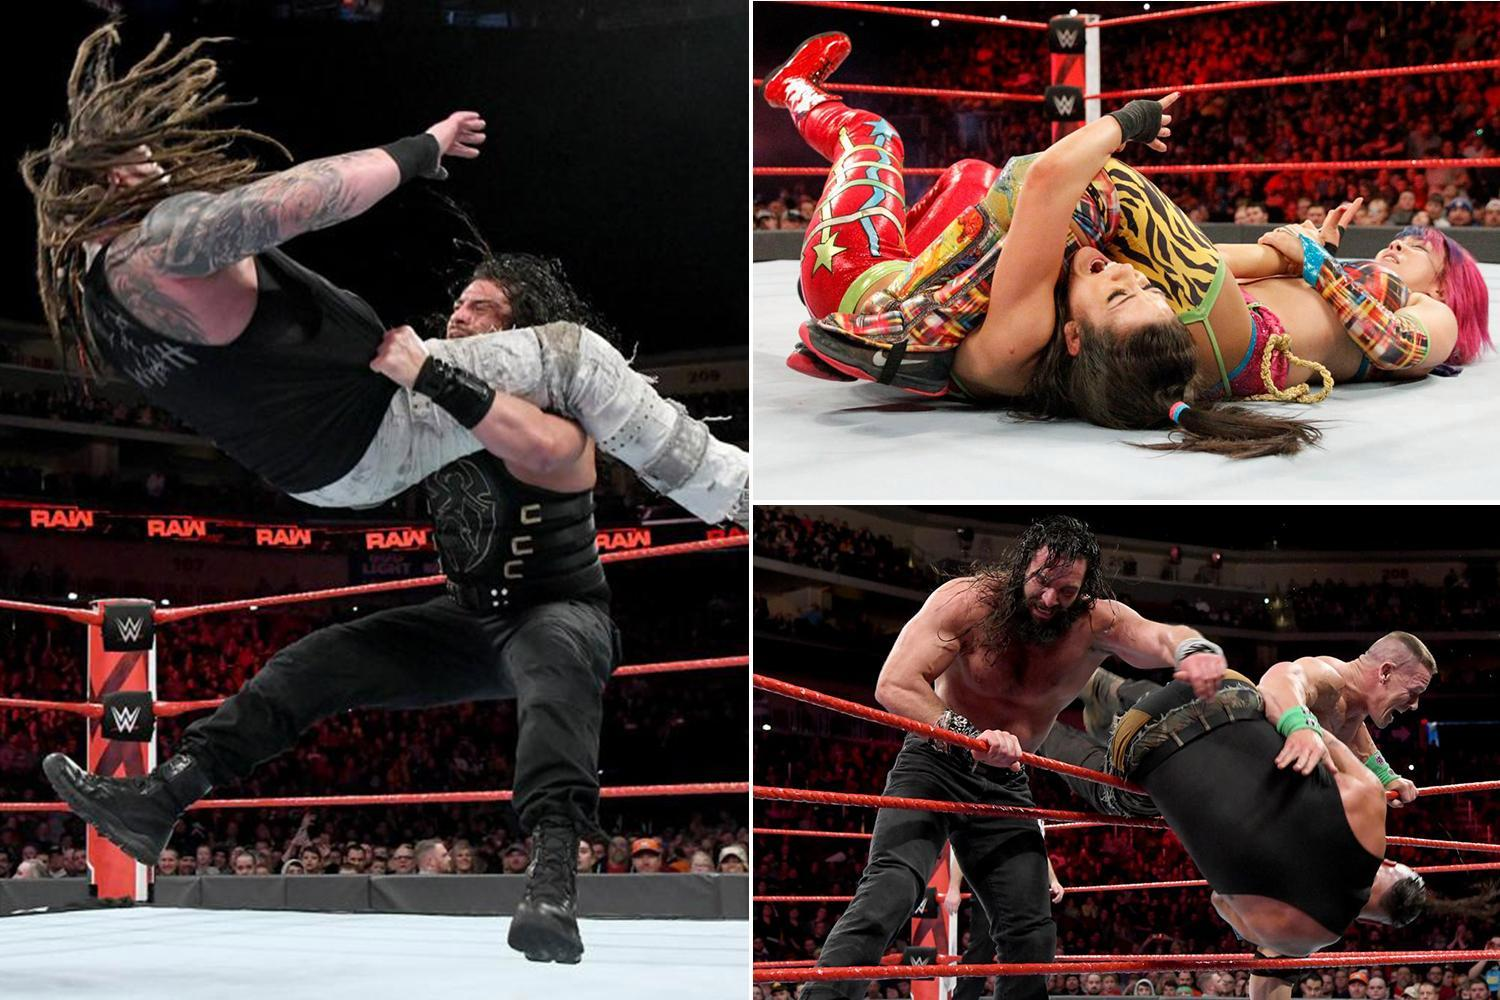 WWE Raw results: Elimination Chamber competitors announced for women's match while Roman Reigns is latest entrant for men